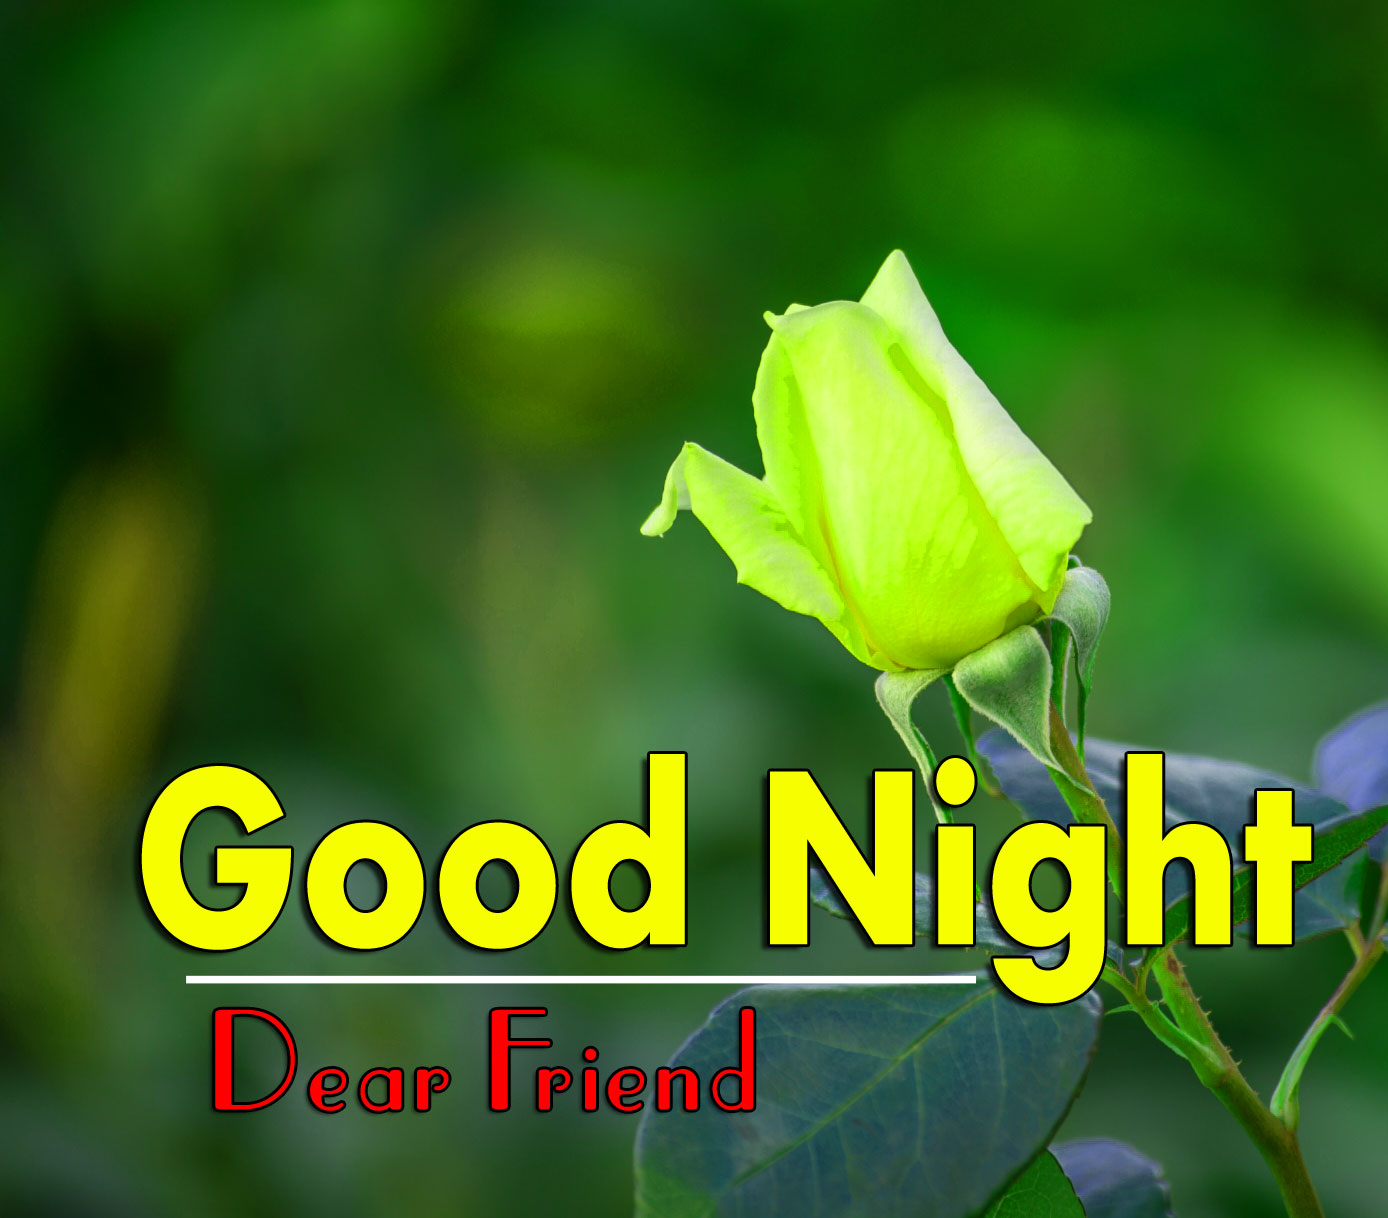 Good Night Wallpaper Images 2